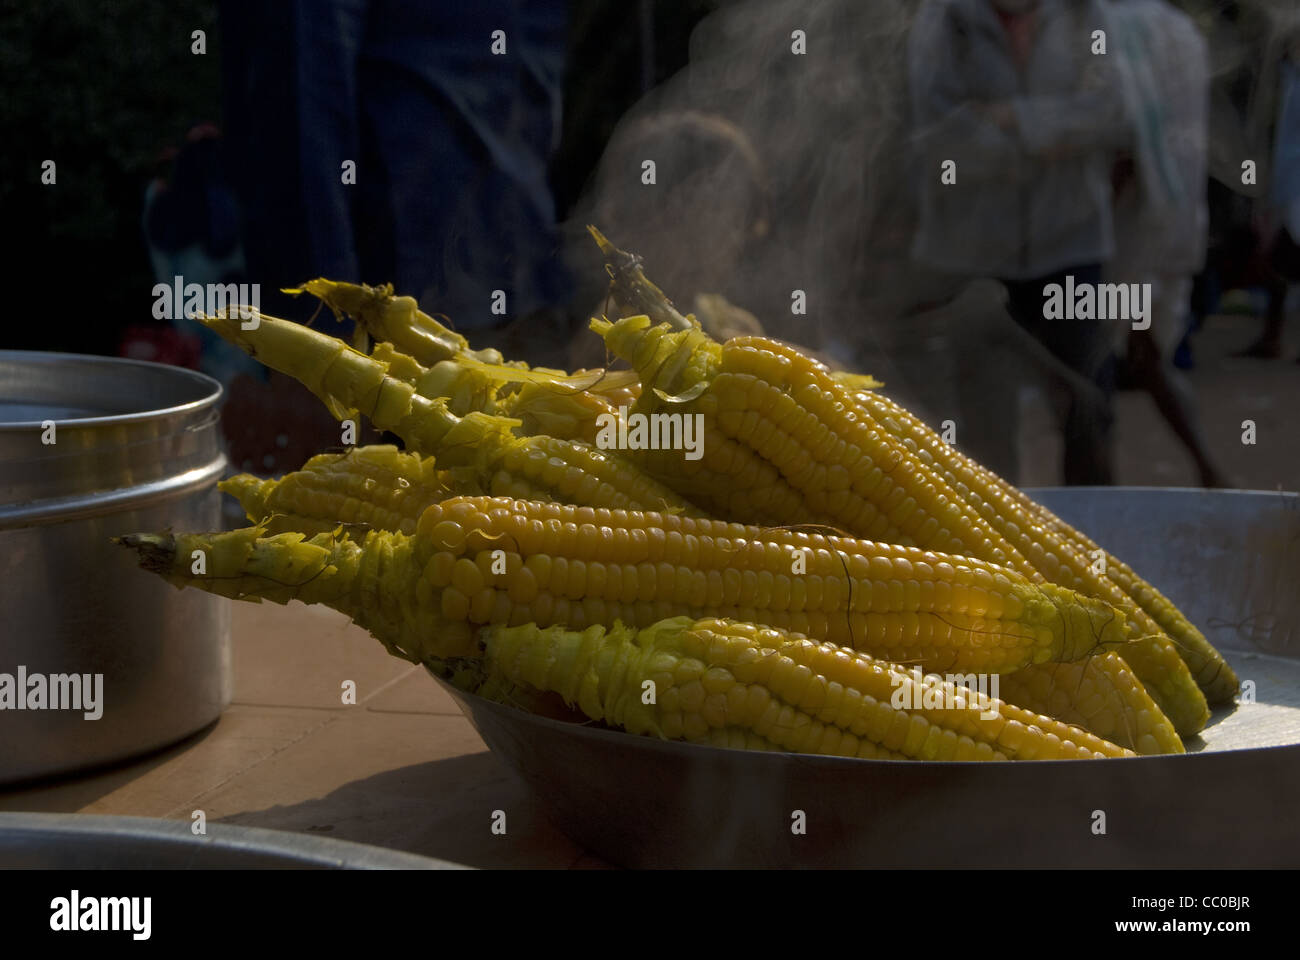 Maize (Zea mays), a food grain from family Poaceae. - Stock Image